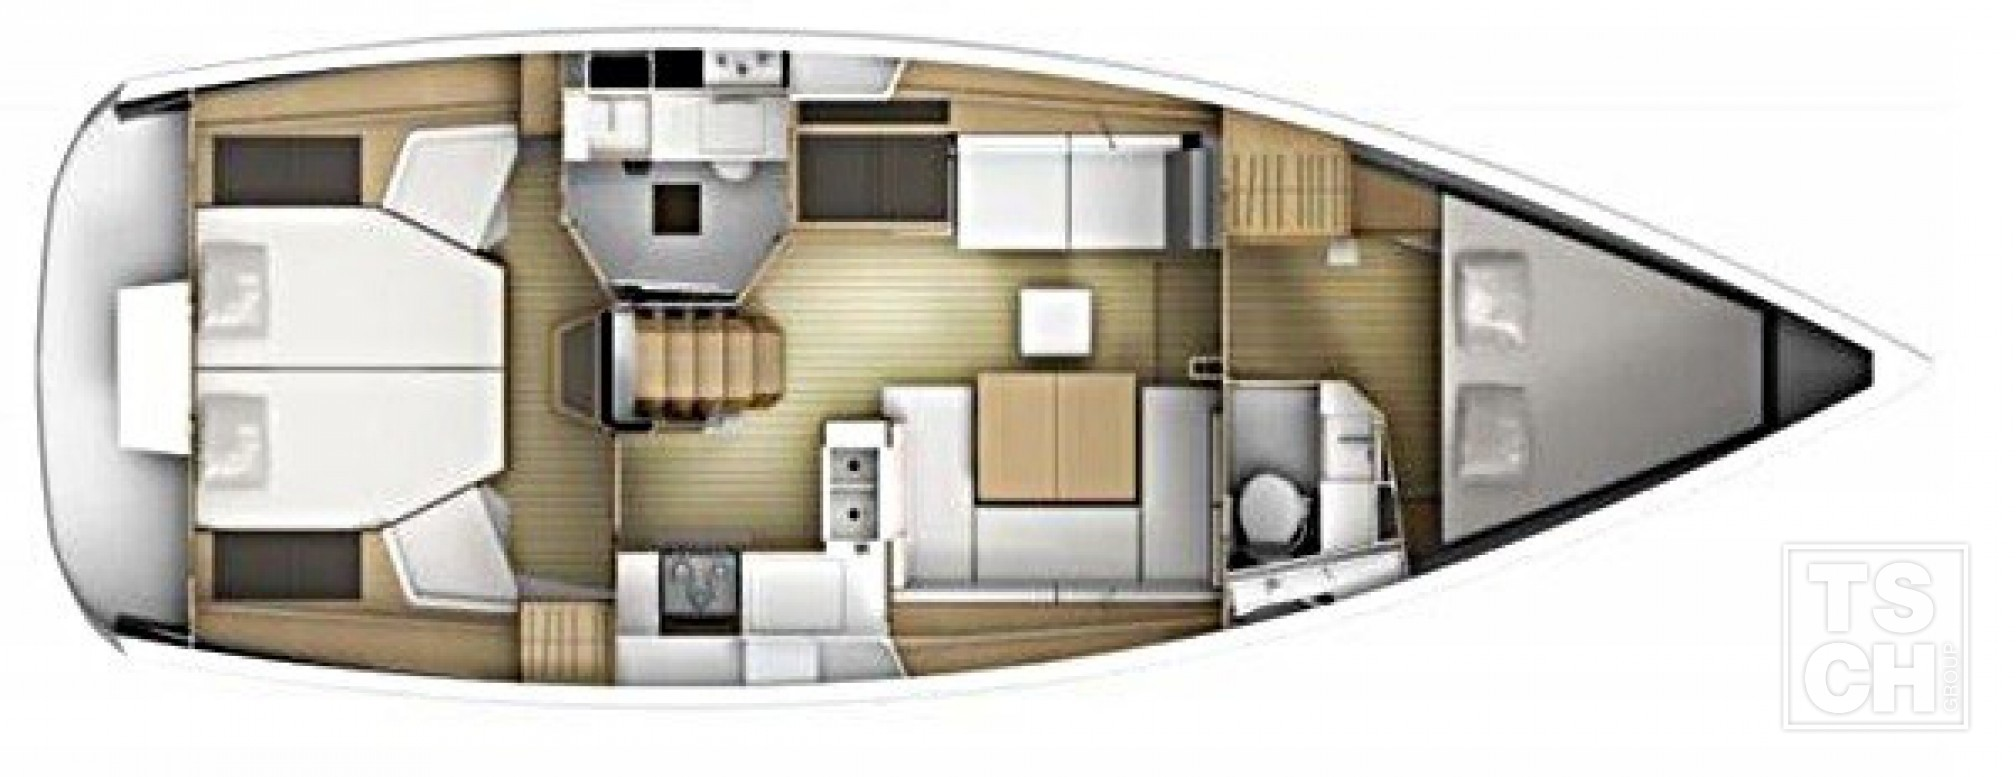 Sun Odyssey 41 DS layout